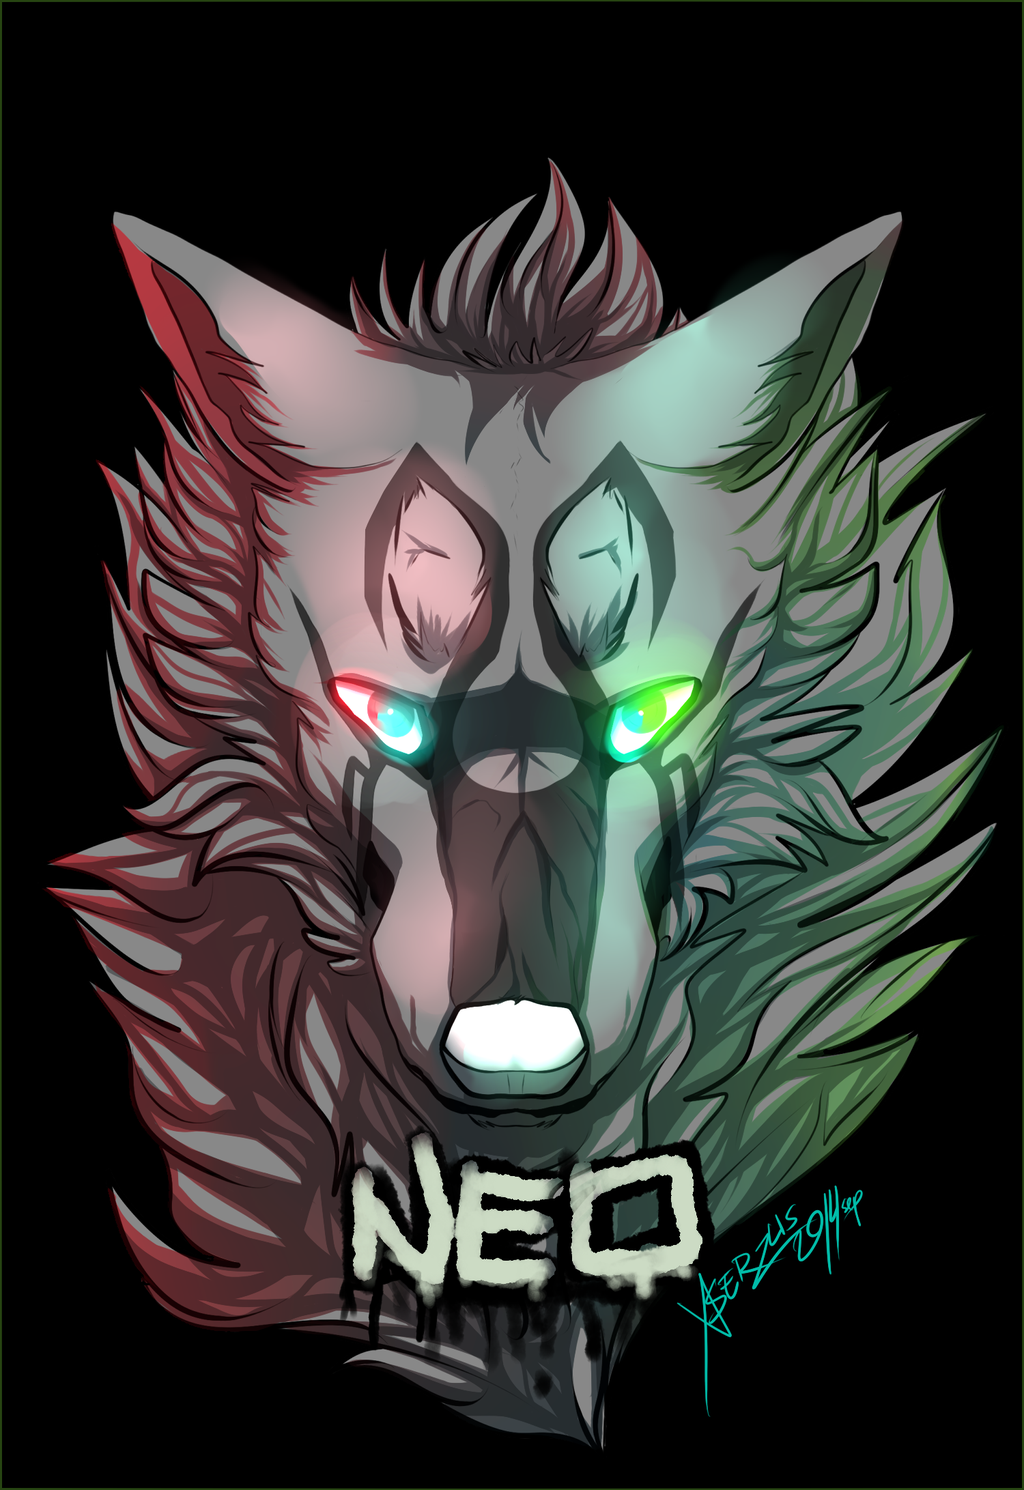 -G- icon for Neo